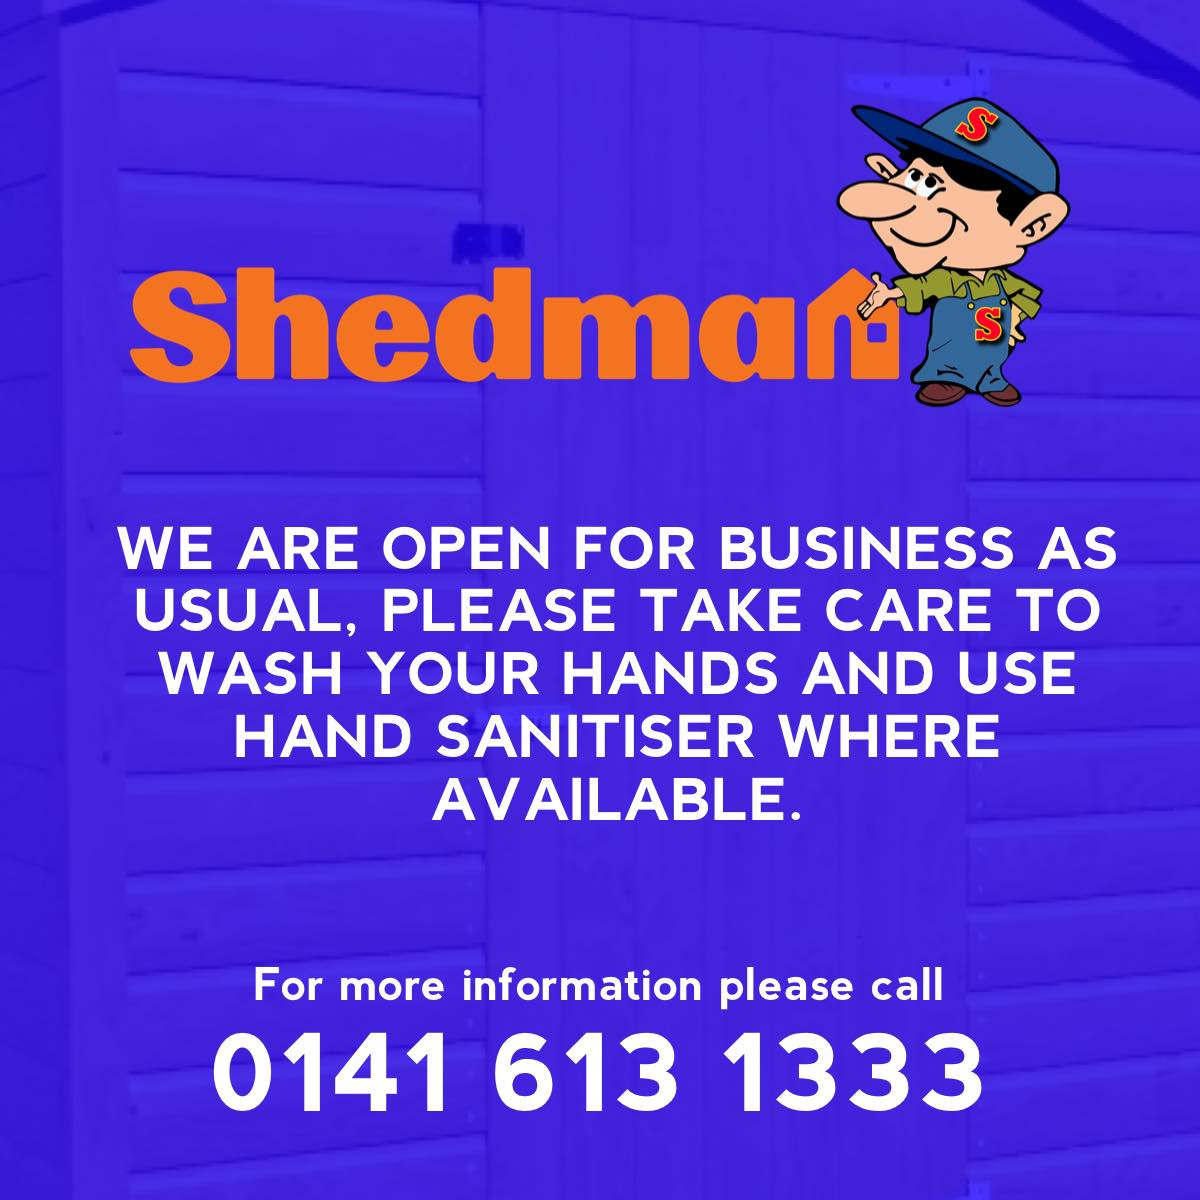 we-are-open-shedman